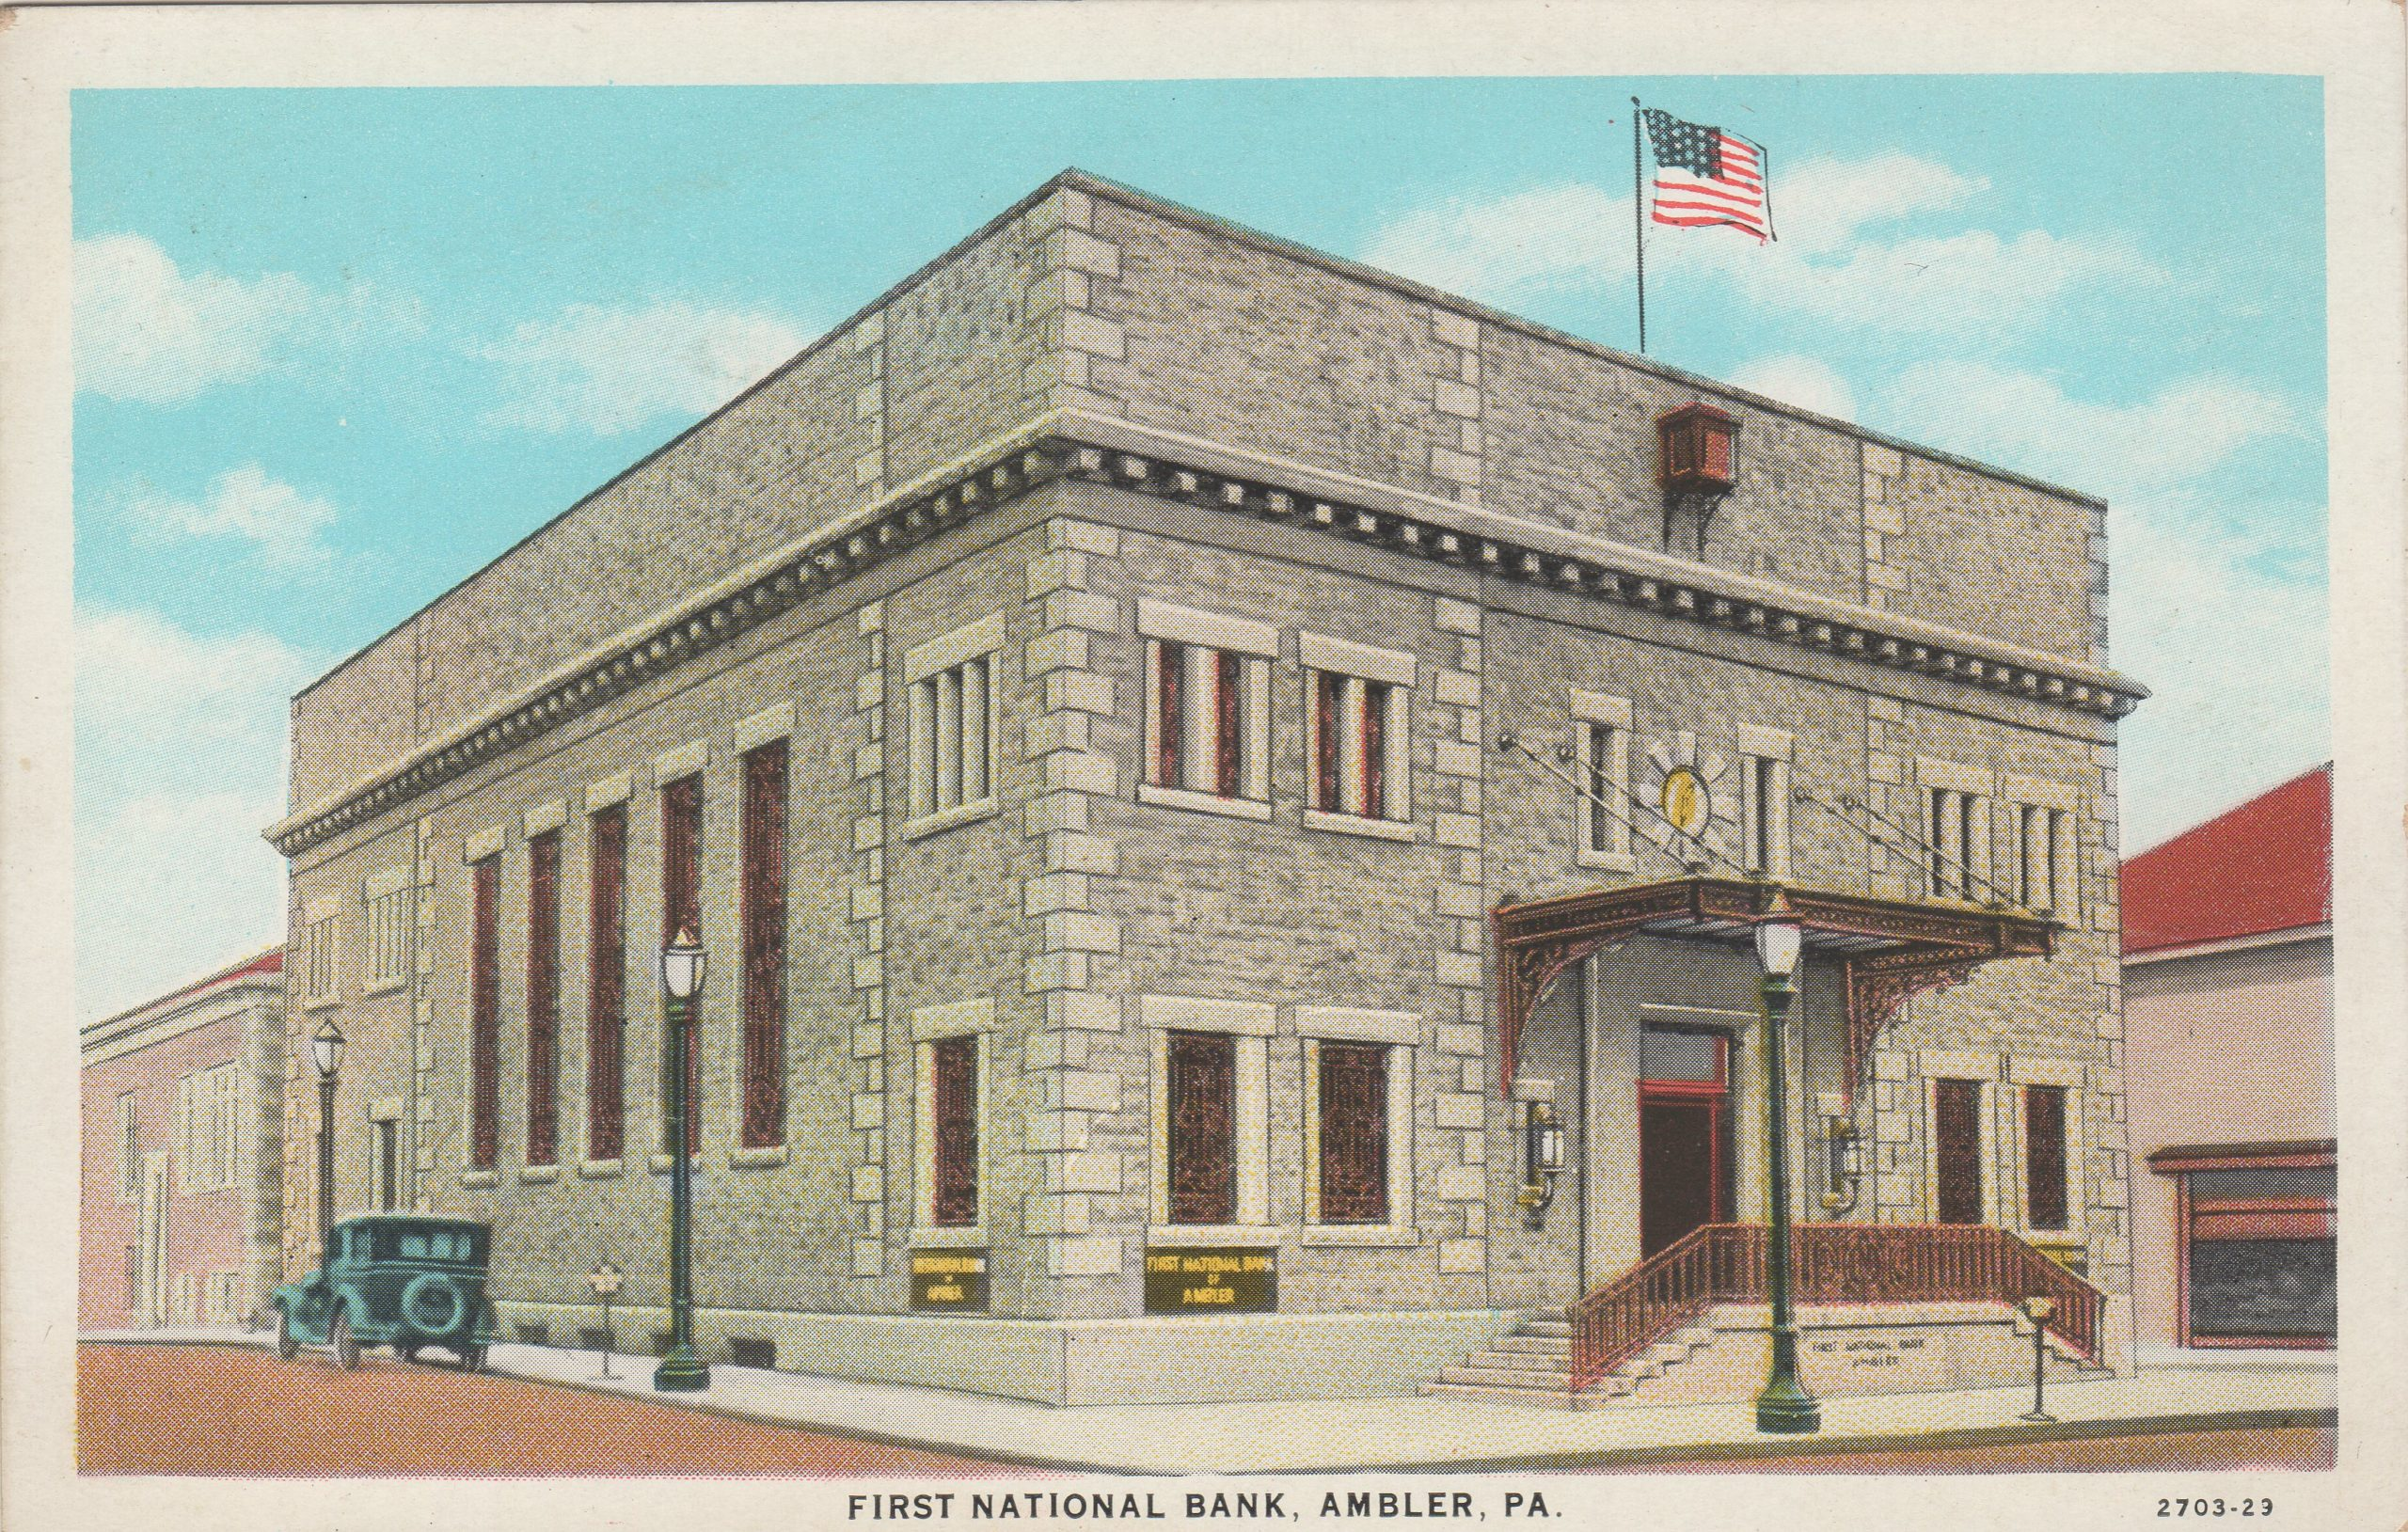 4125.62 Ambler Pa Postcard_First National Bank